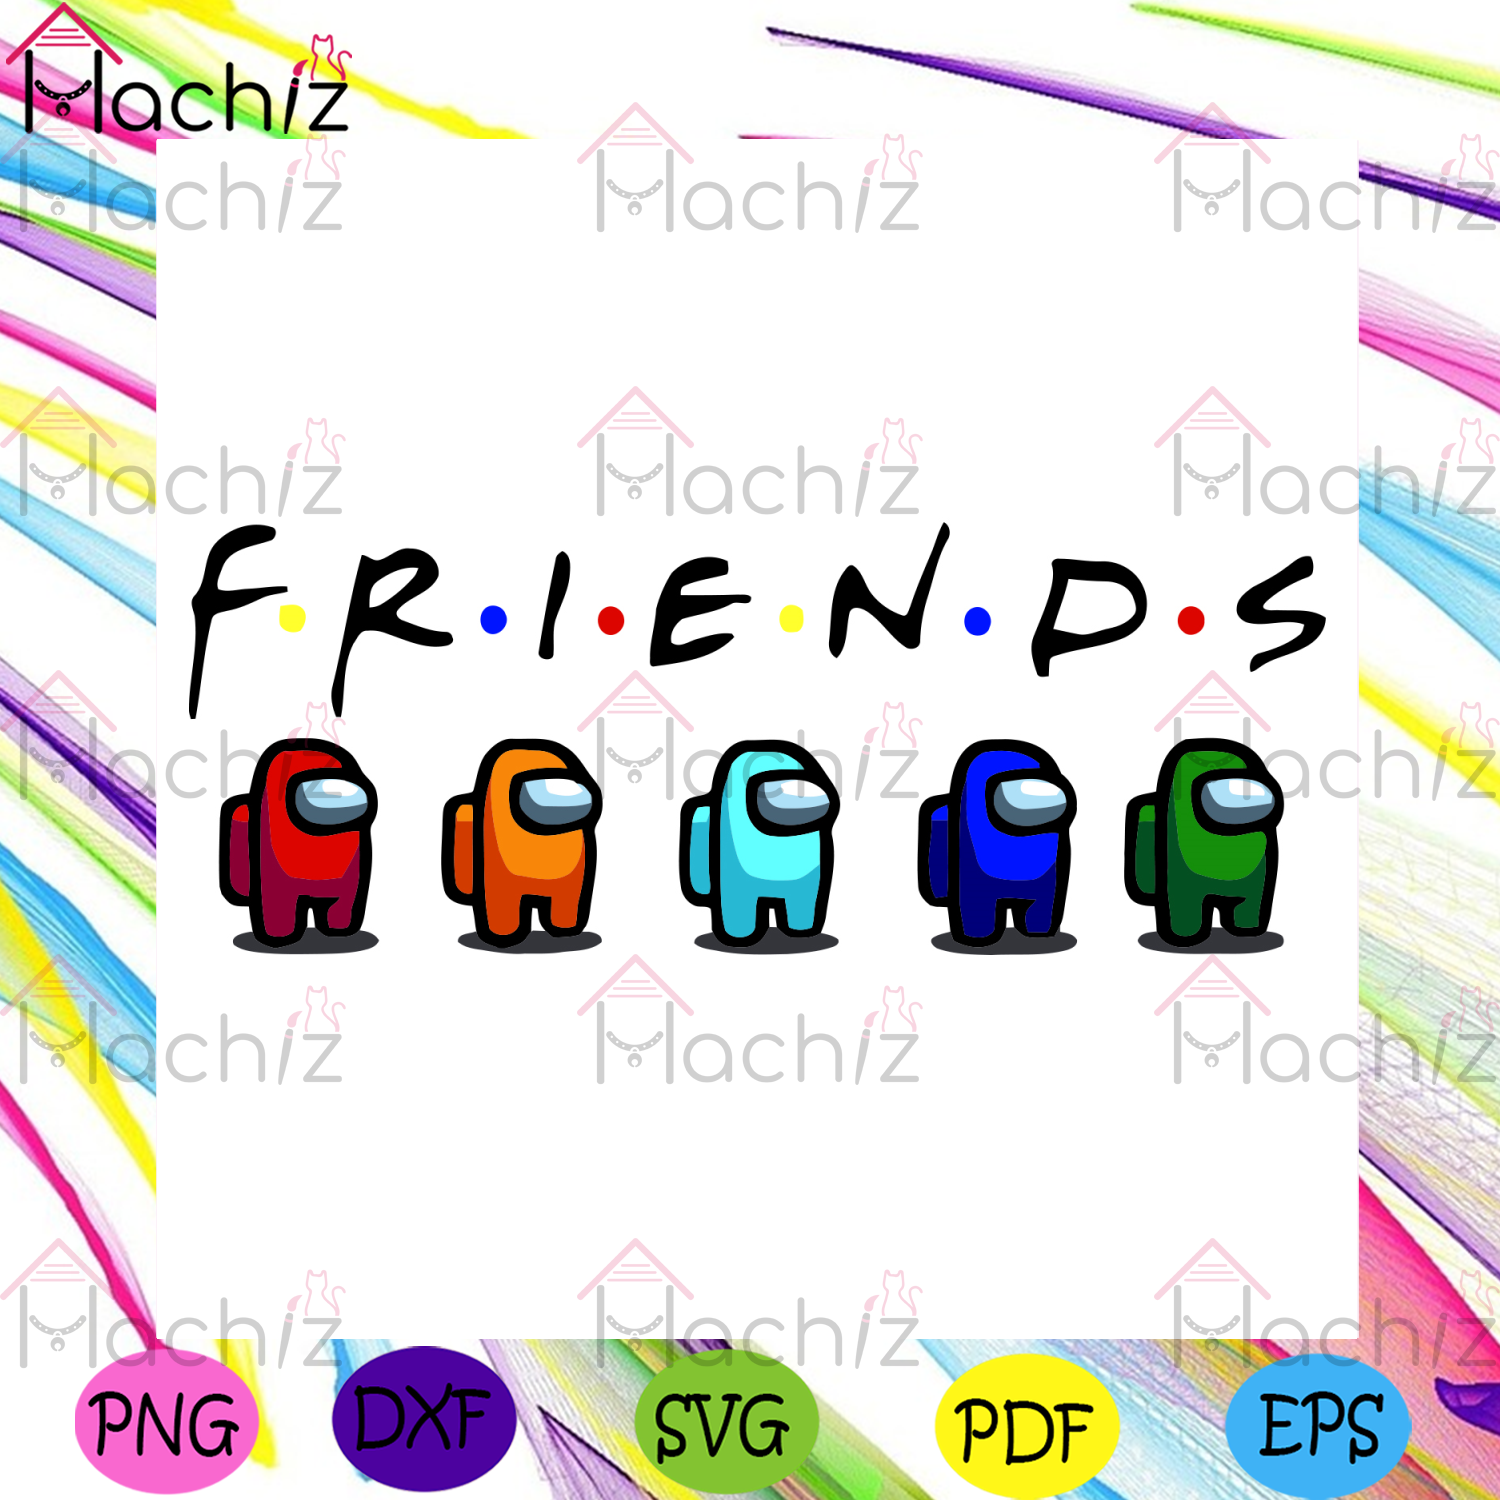 Friends Svg, Trending Svg, Among Us Avg, Impostor Svg, Crewmates Svg, Game Svg, Among Friends Svg, Among Us Game Svg, Among Us Lovers, Gamers Svg, Game Lovers Svg, Funny Svg, Funny Design Svg, Game Gifts Svg, Video Game Svg